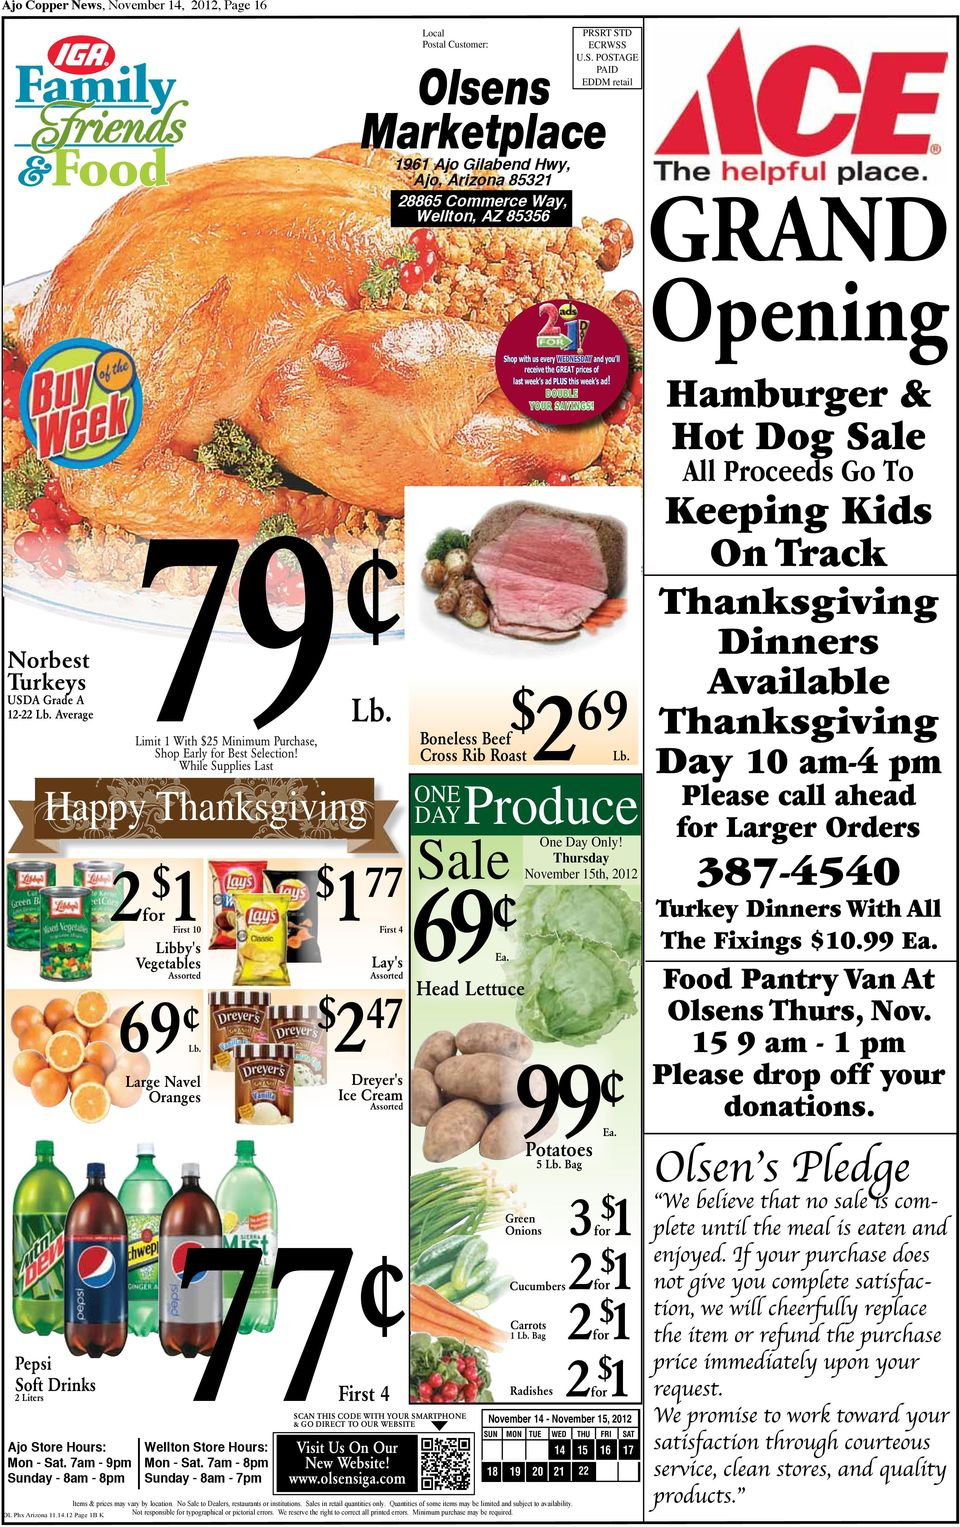 Large Navel Oranges $ 1 77 First 4 Lay's Assorted $ 2 47 Dreyer's Ice Cream Assorted Local Postal Customer: $ 2 69 Boneless Beef Cross Rib Roast Lb. ONE DAY Sale 69 Ea.